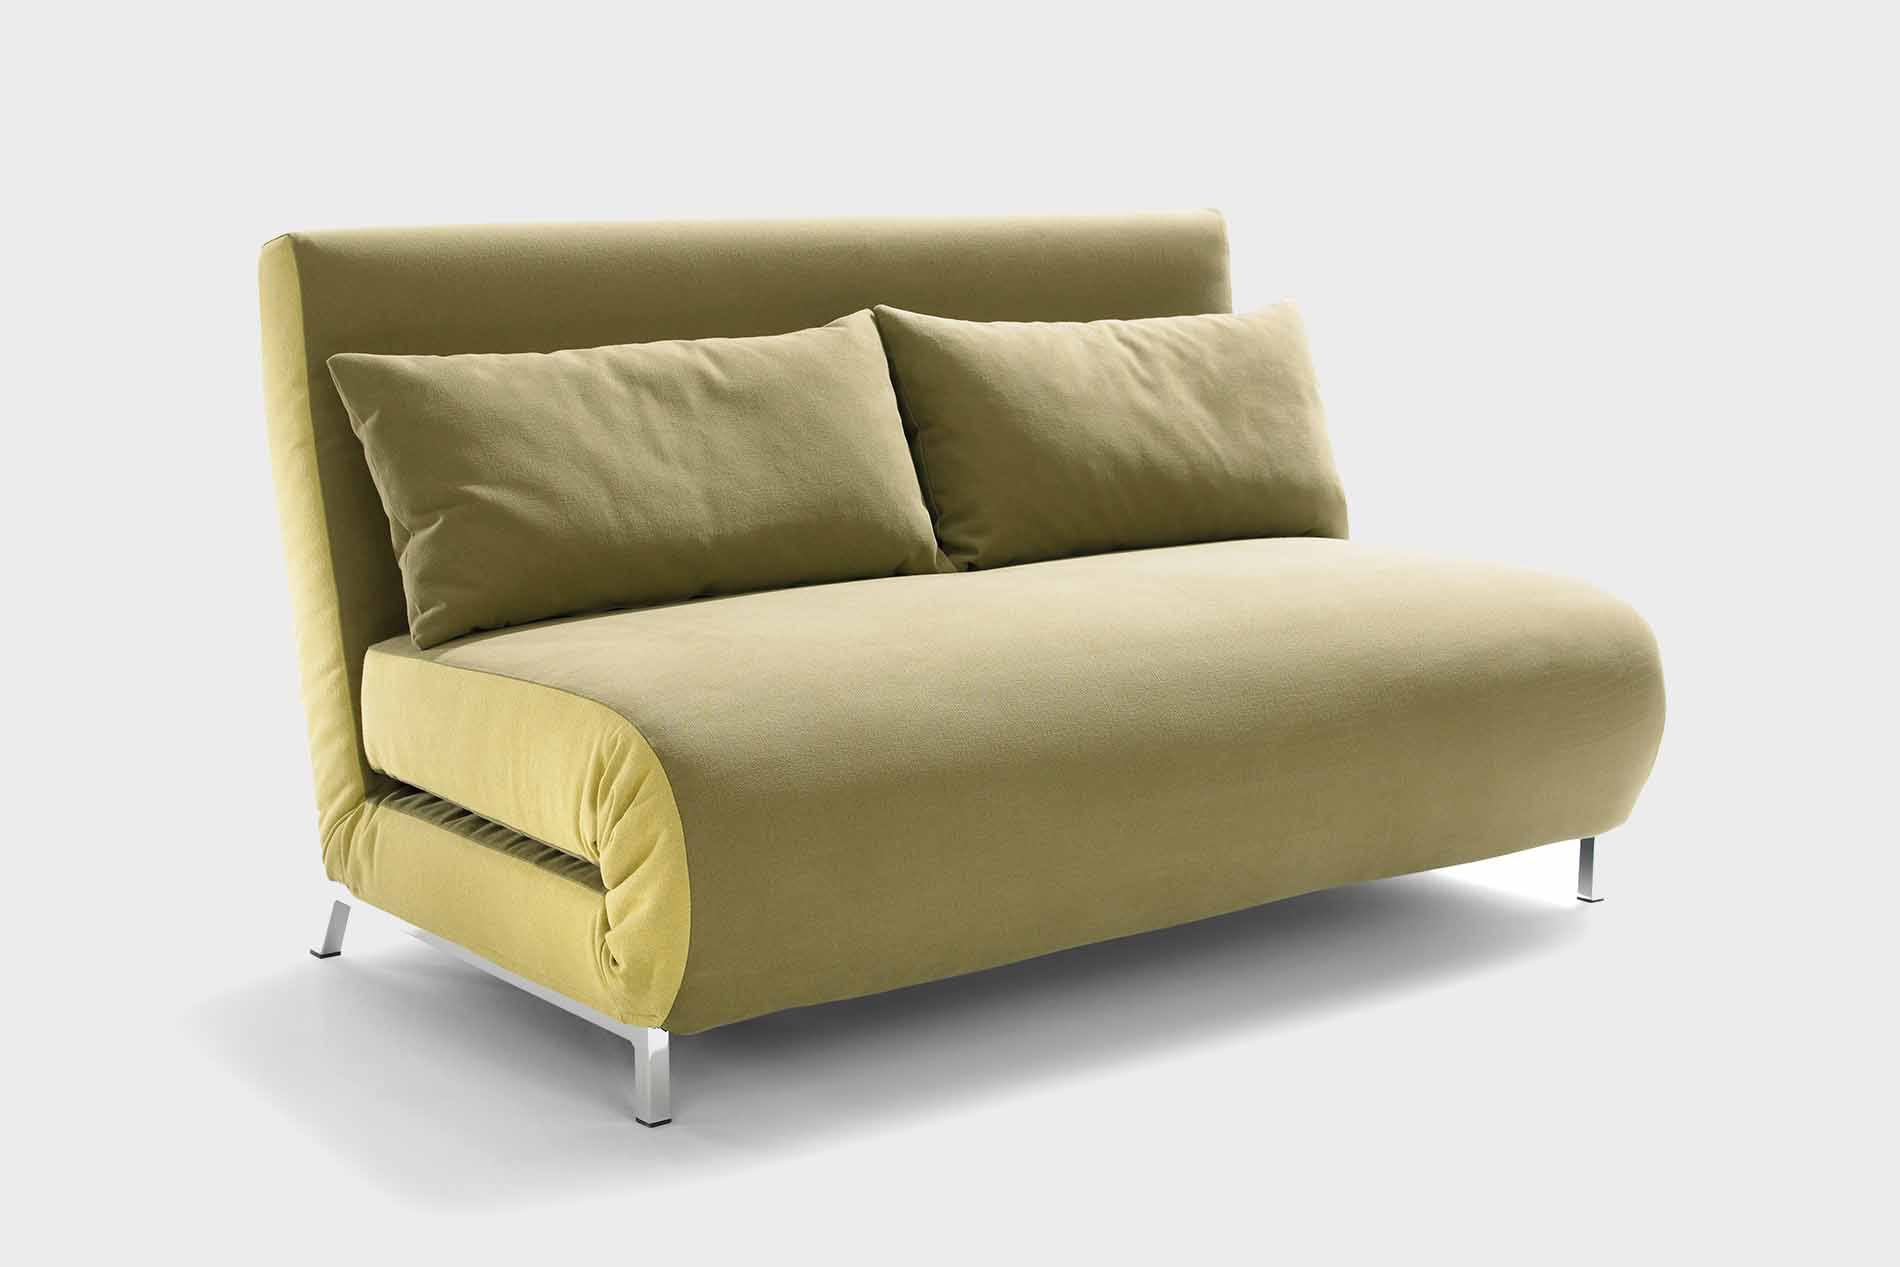 Bequemes sofa best envelop large ushaped sectional with for Bequemes bettsofa